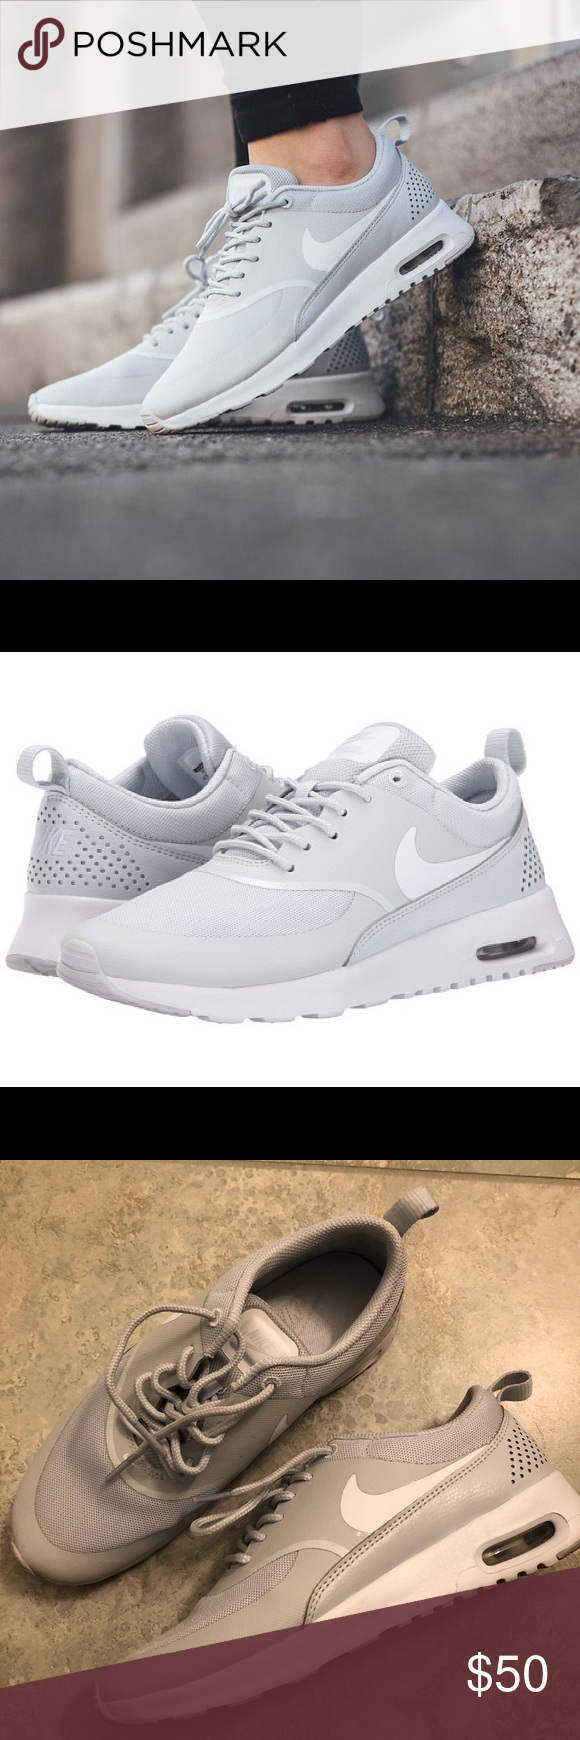 buy popular 1a8e0 92a47 Spotted while shopping on Poshmark  Air Max Thea!  poshmark  fashion   shopping  style  Nike  Shoes